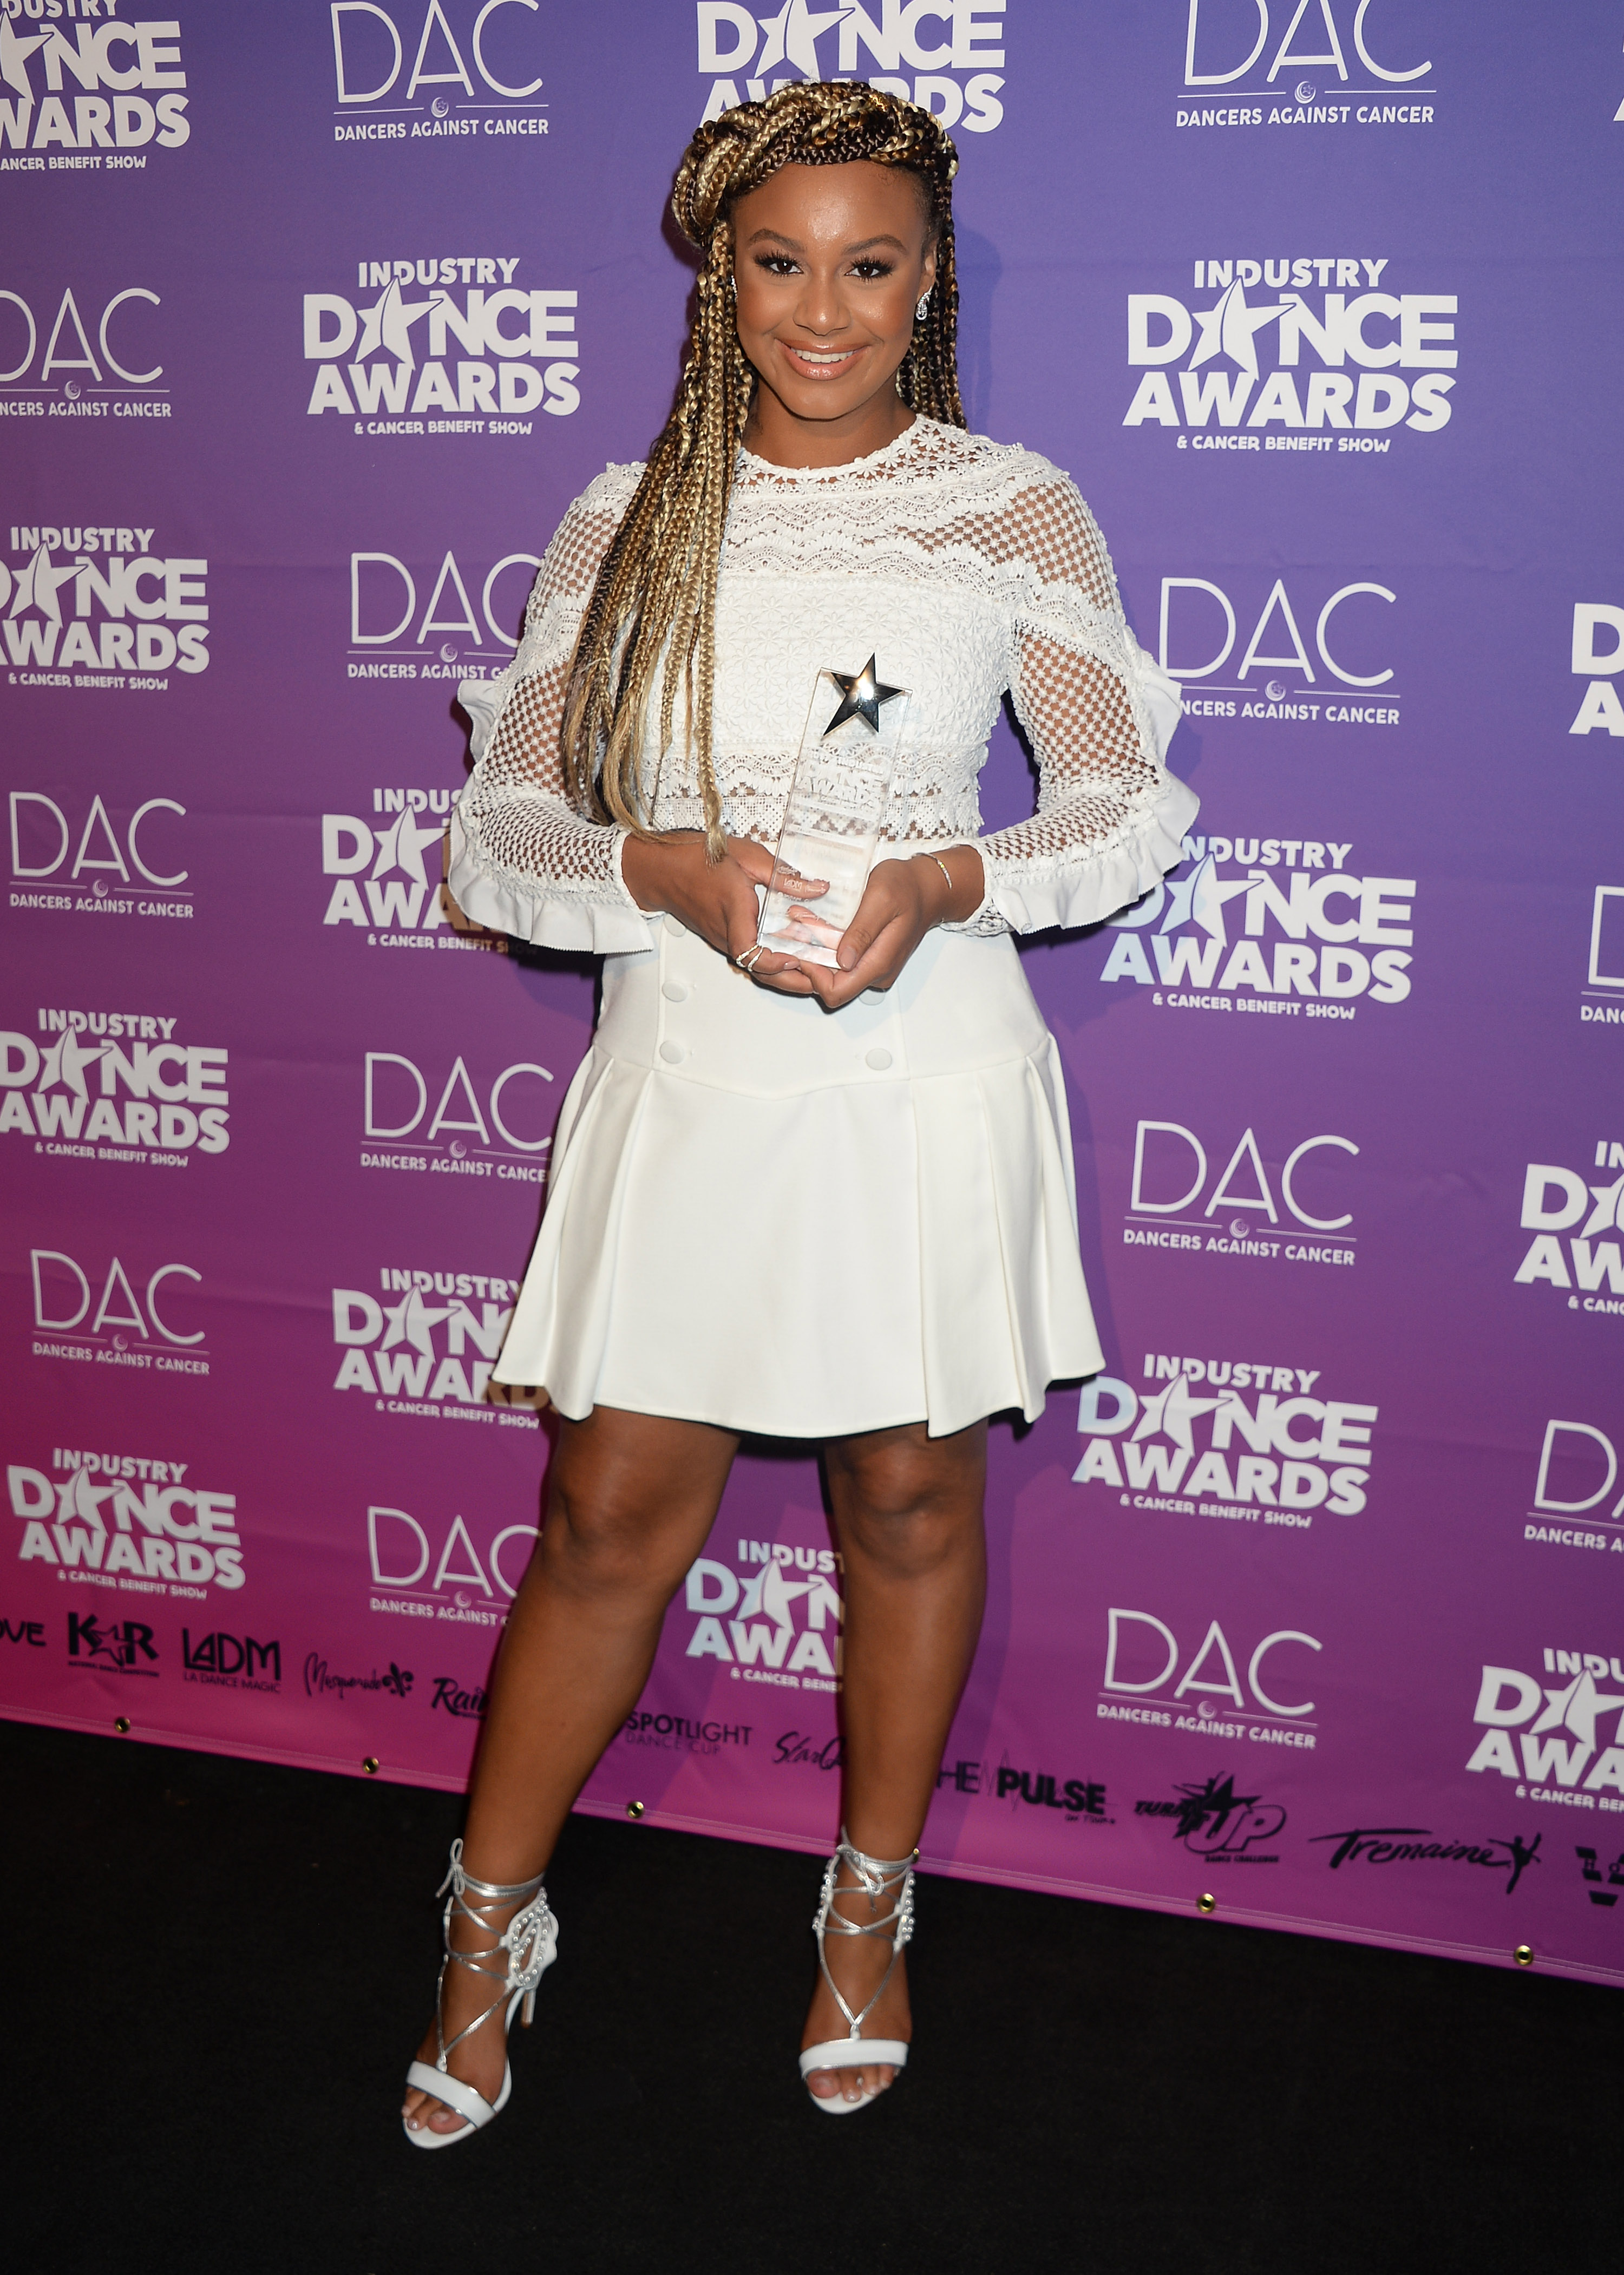 Nia Sioux - Industry Dance Awards